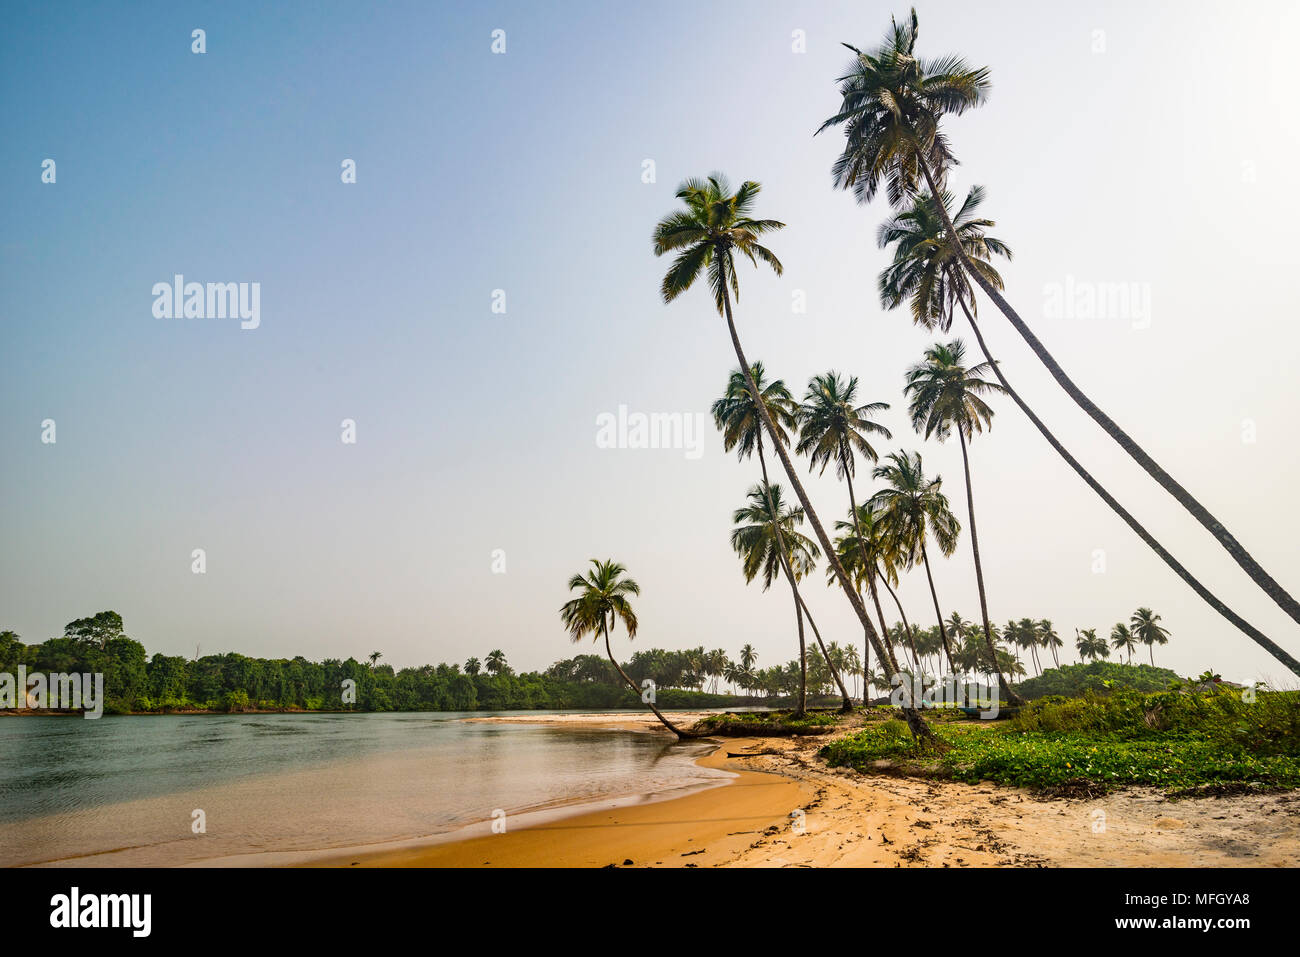 River flowing in the ocean south of Buchanan, Liberia, West Africa, Africa - Stock Image